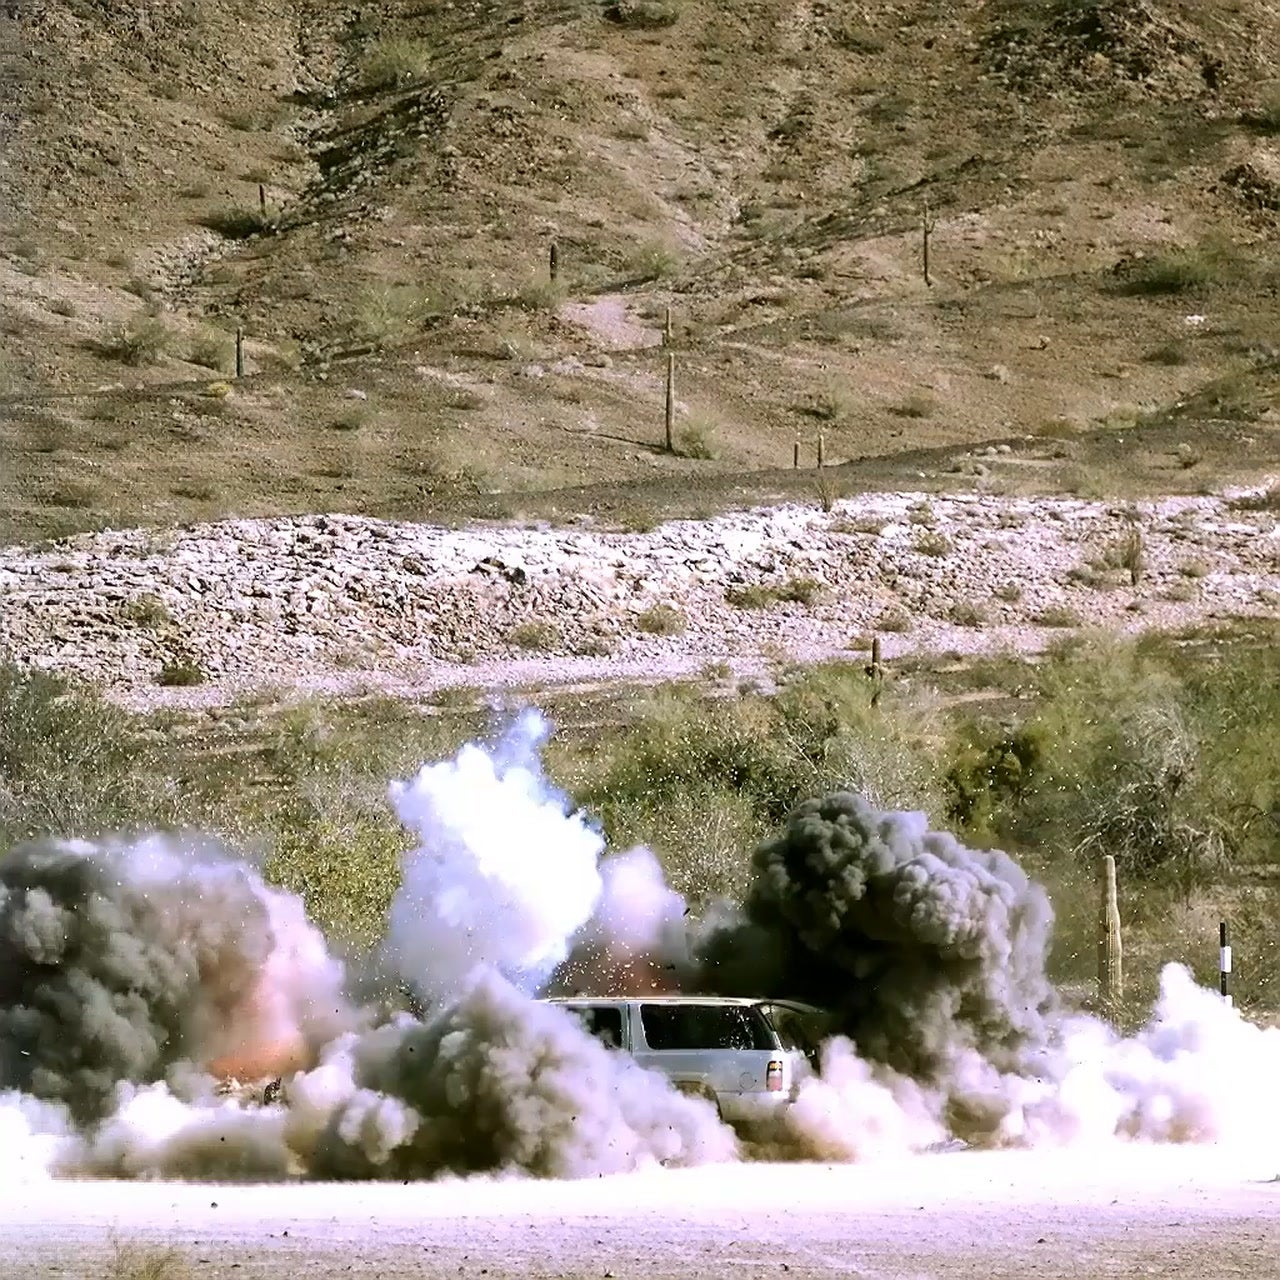 Army Extended Range Cannon Artillery test video